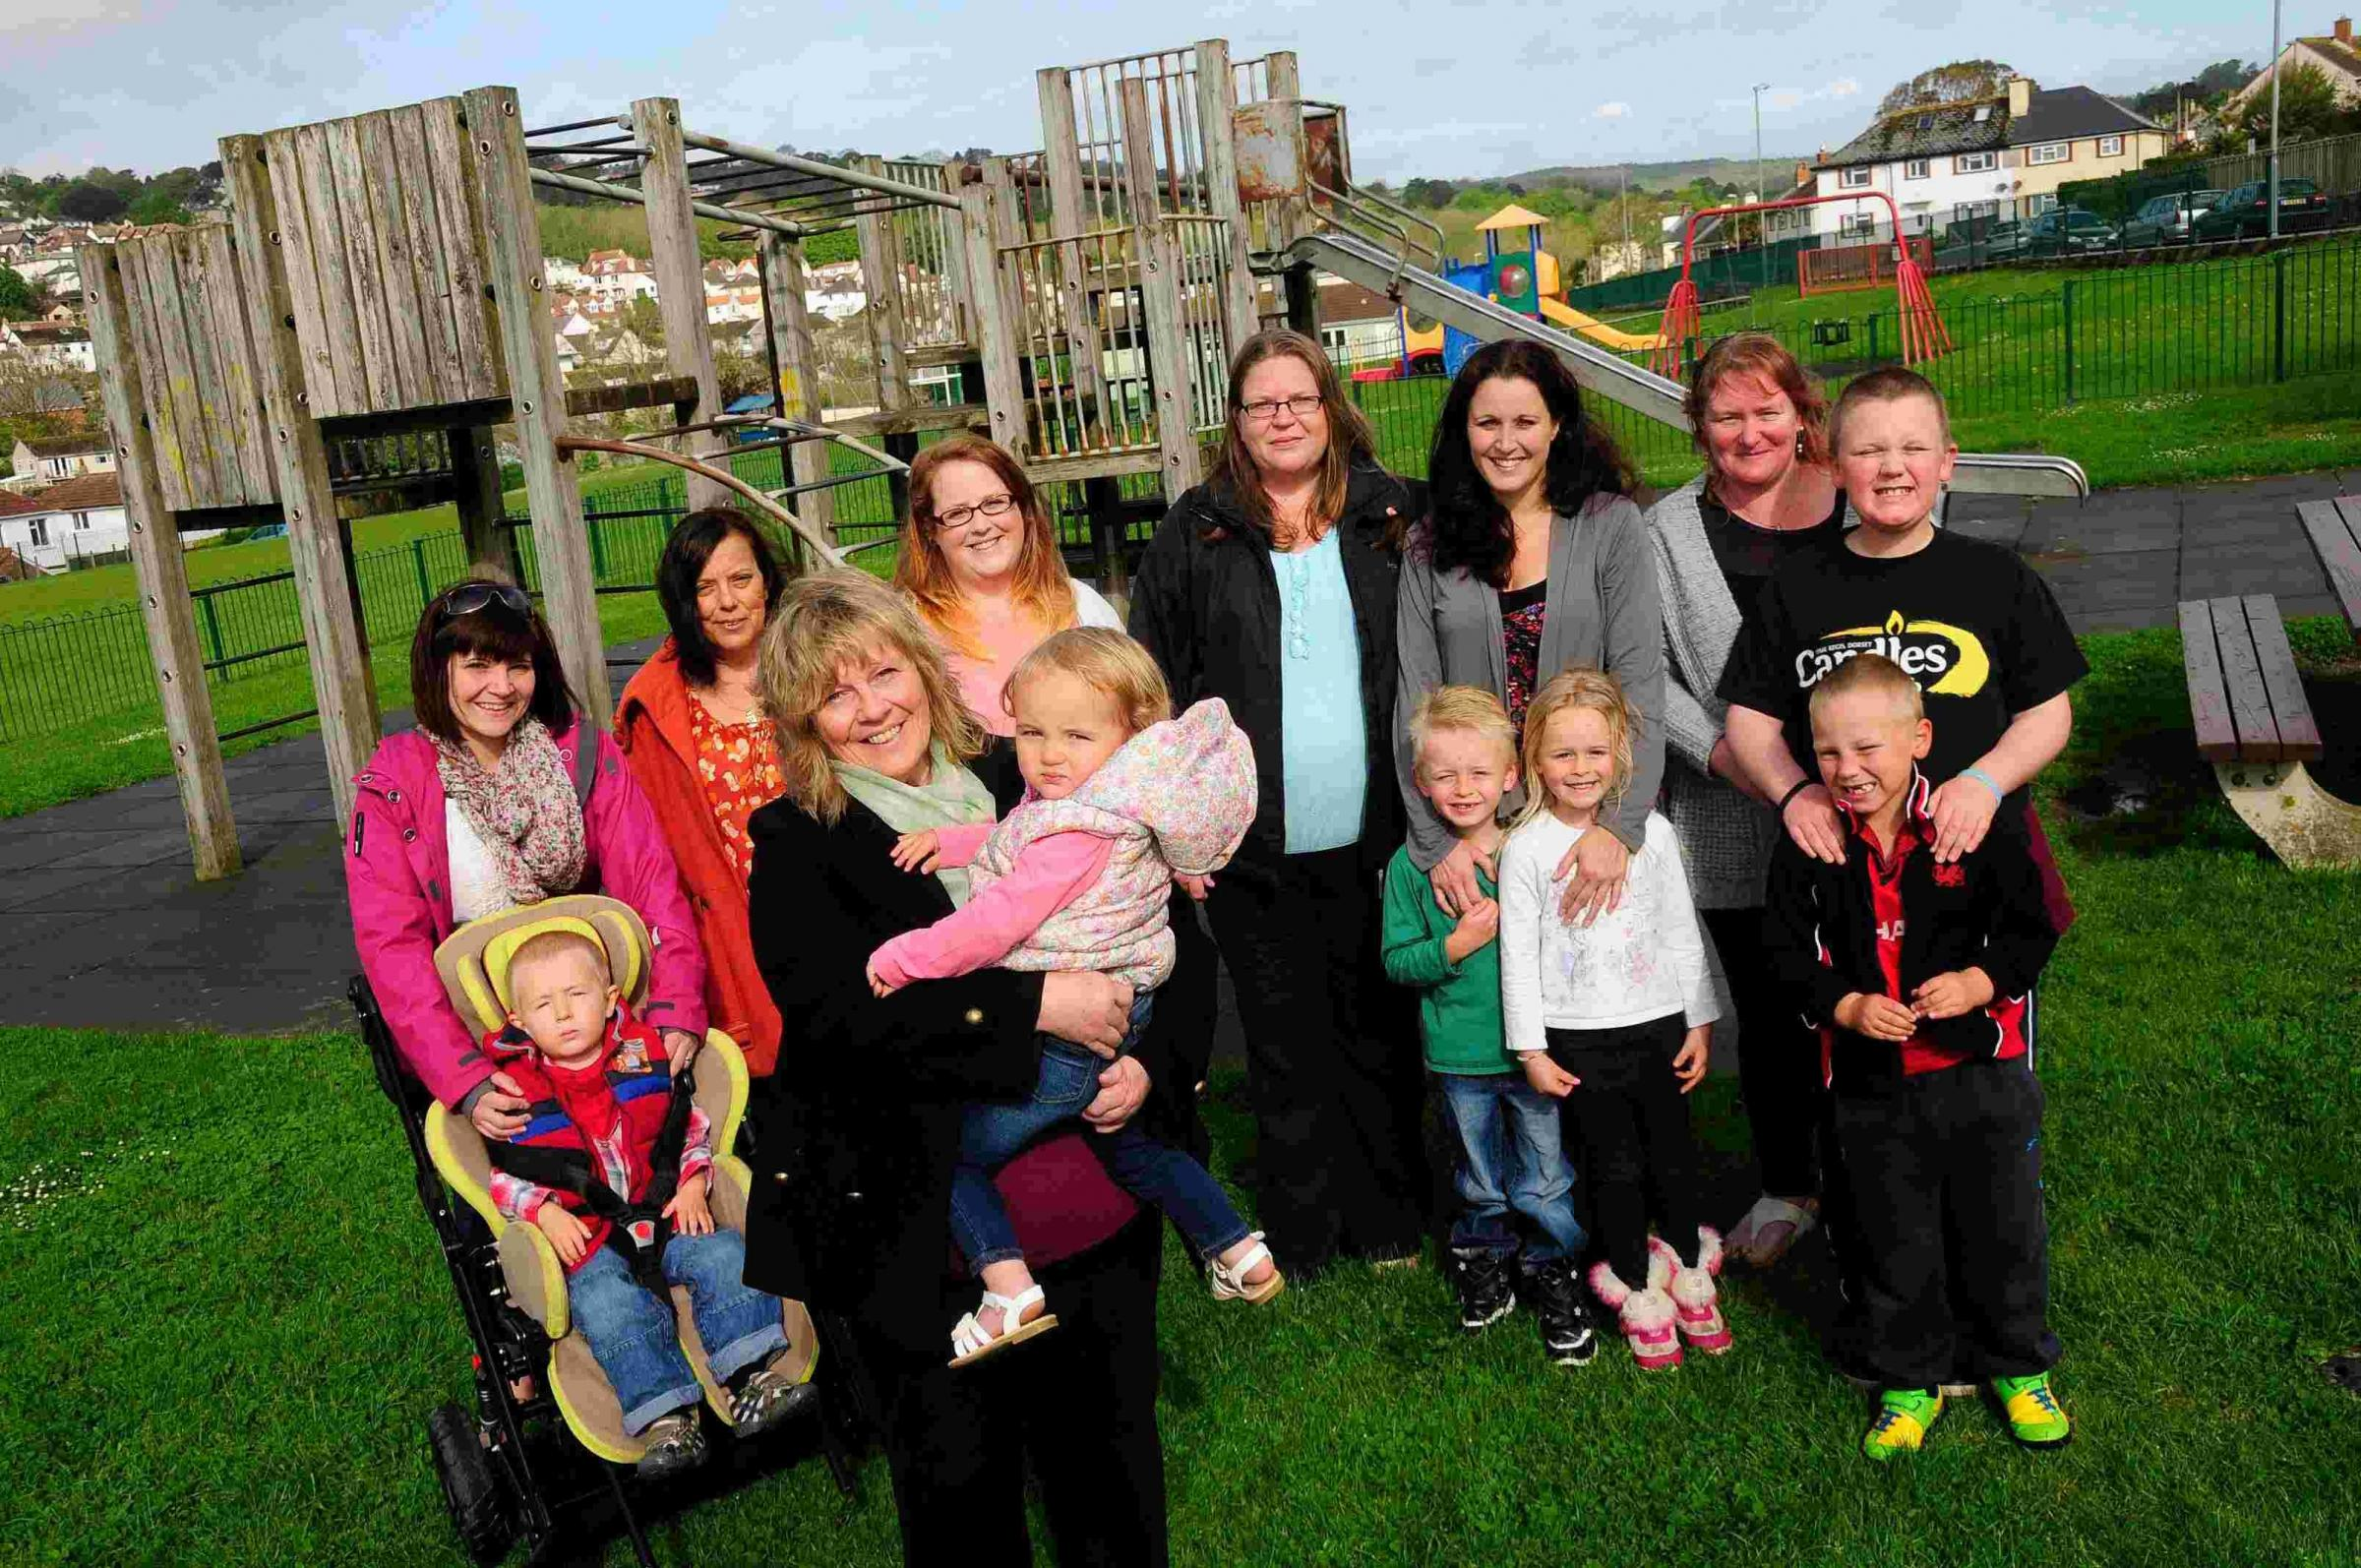 Cheryl Reynolds, front middle, with members of the Lyme Regis play park association